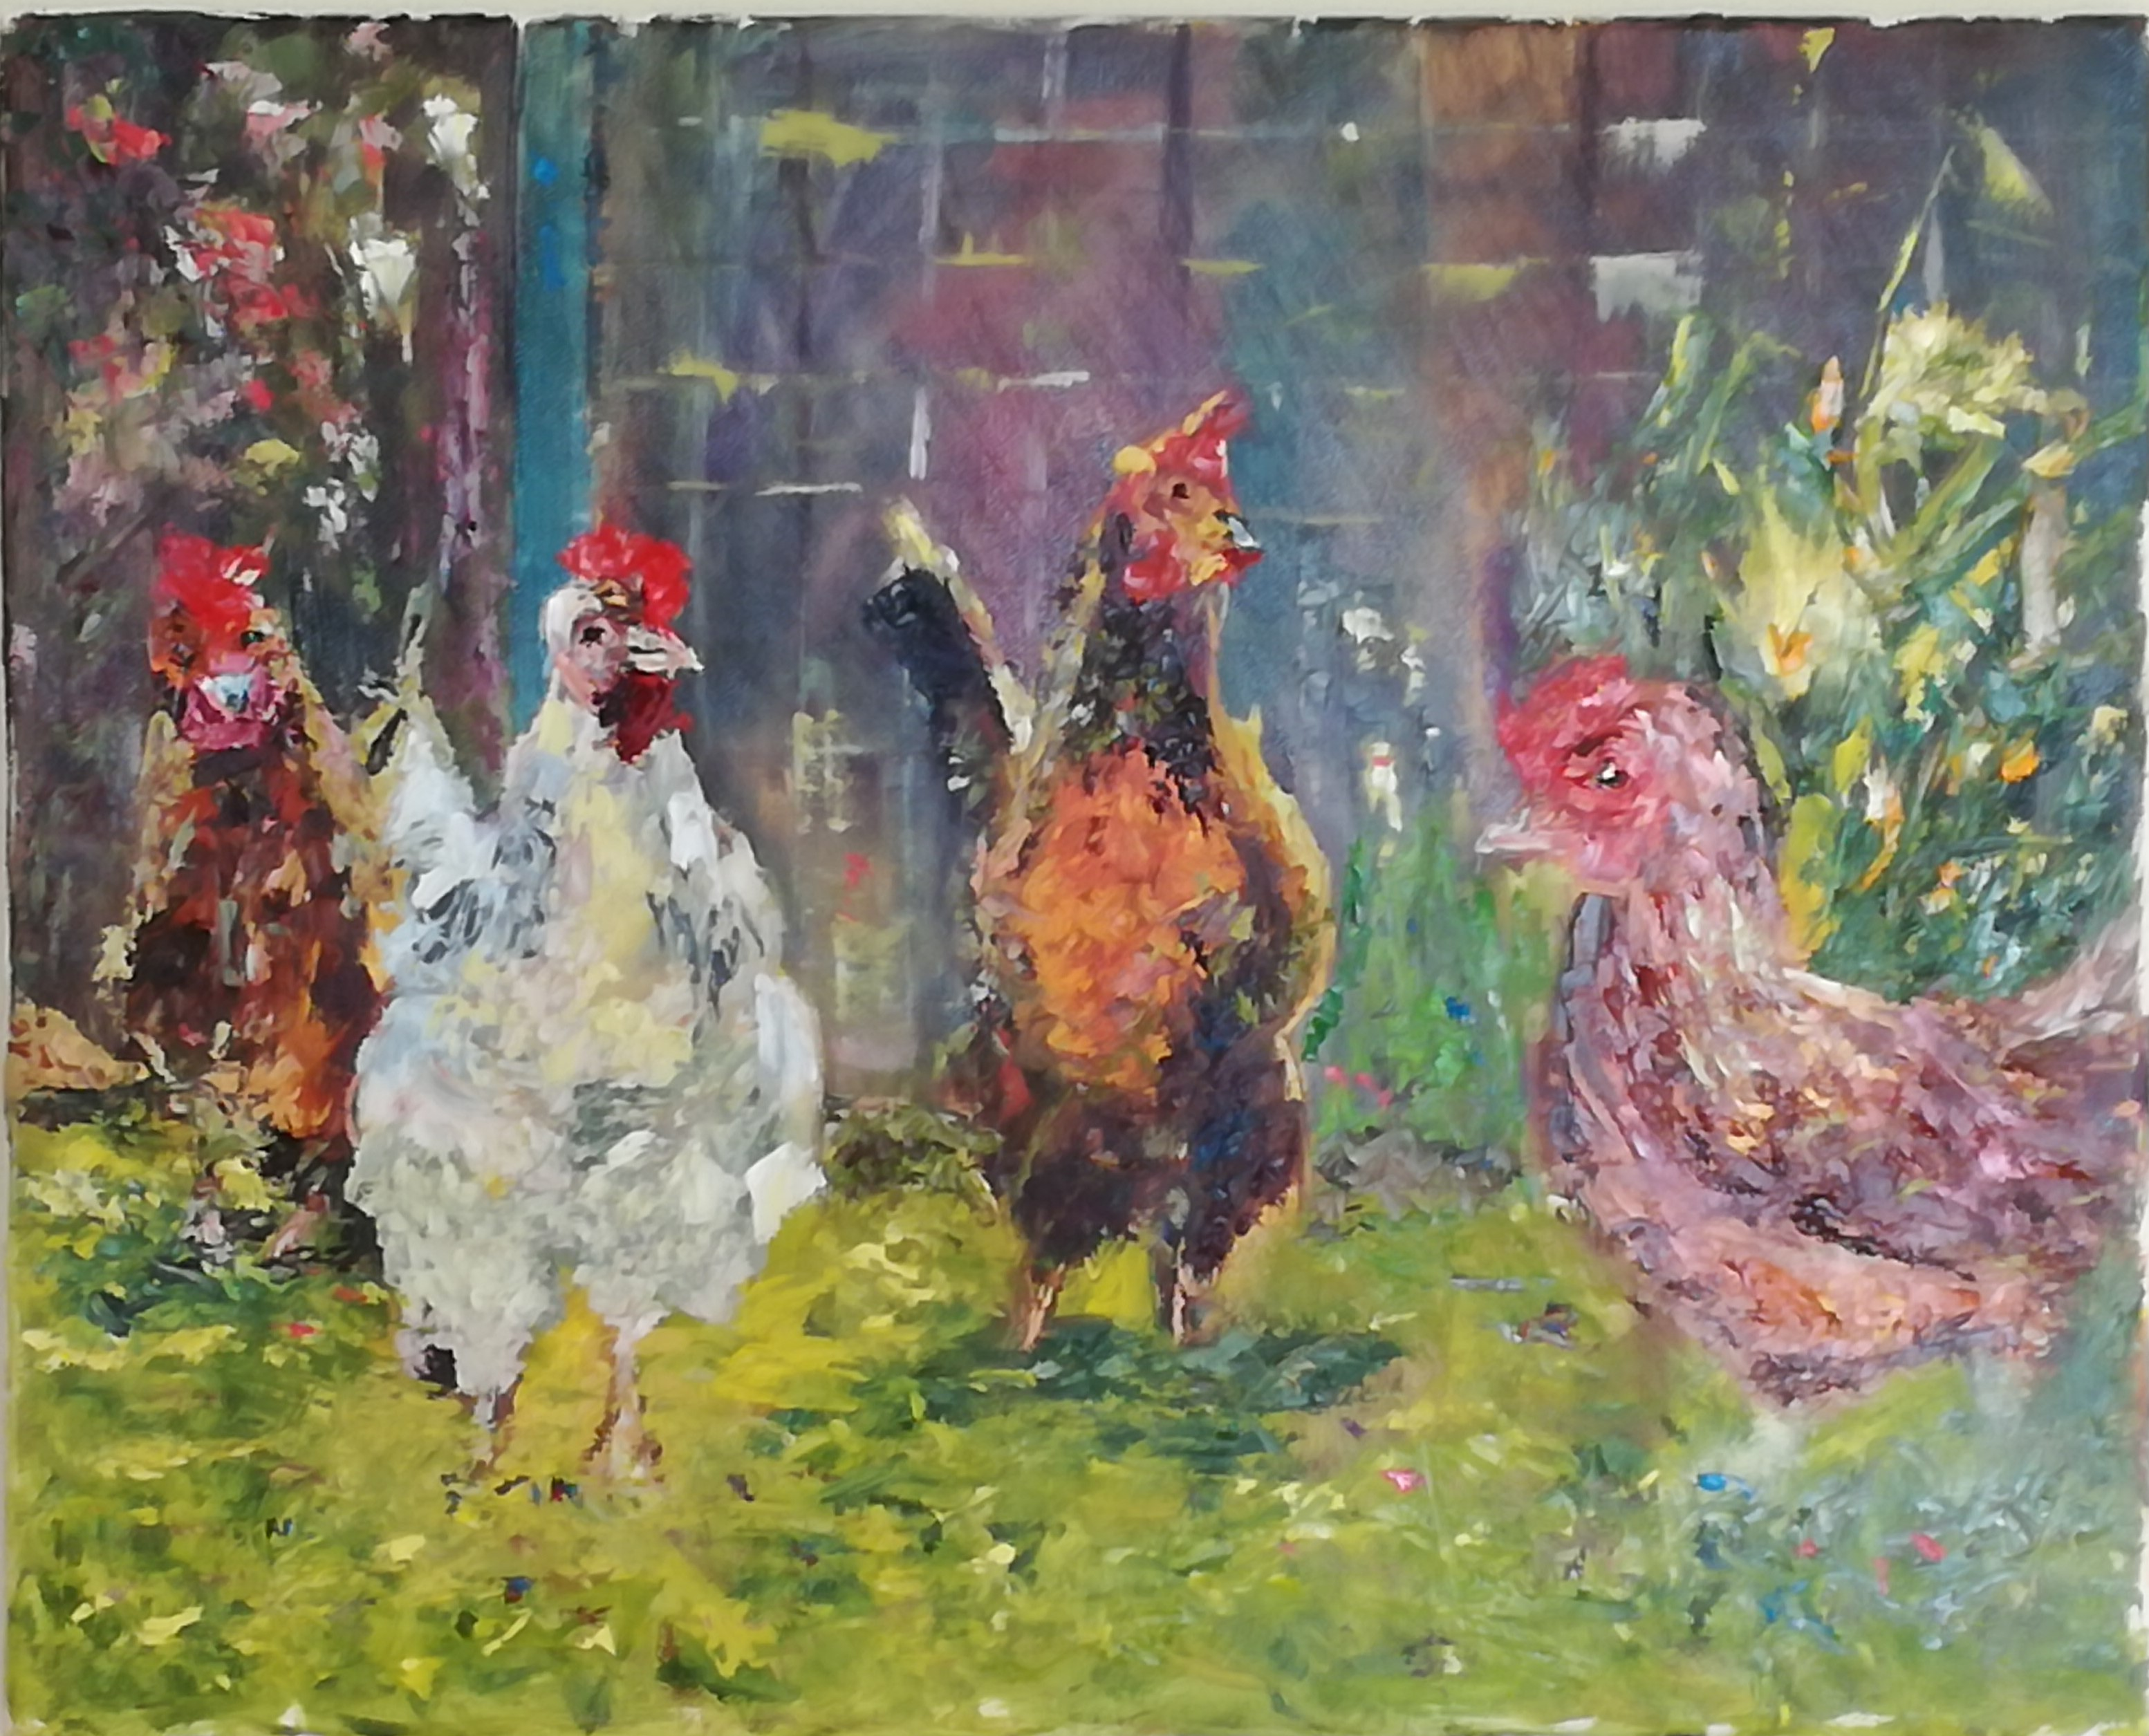 Hens Chatting